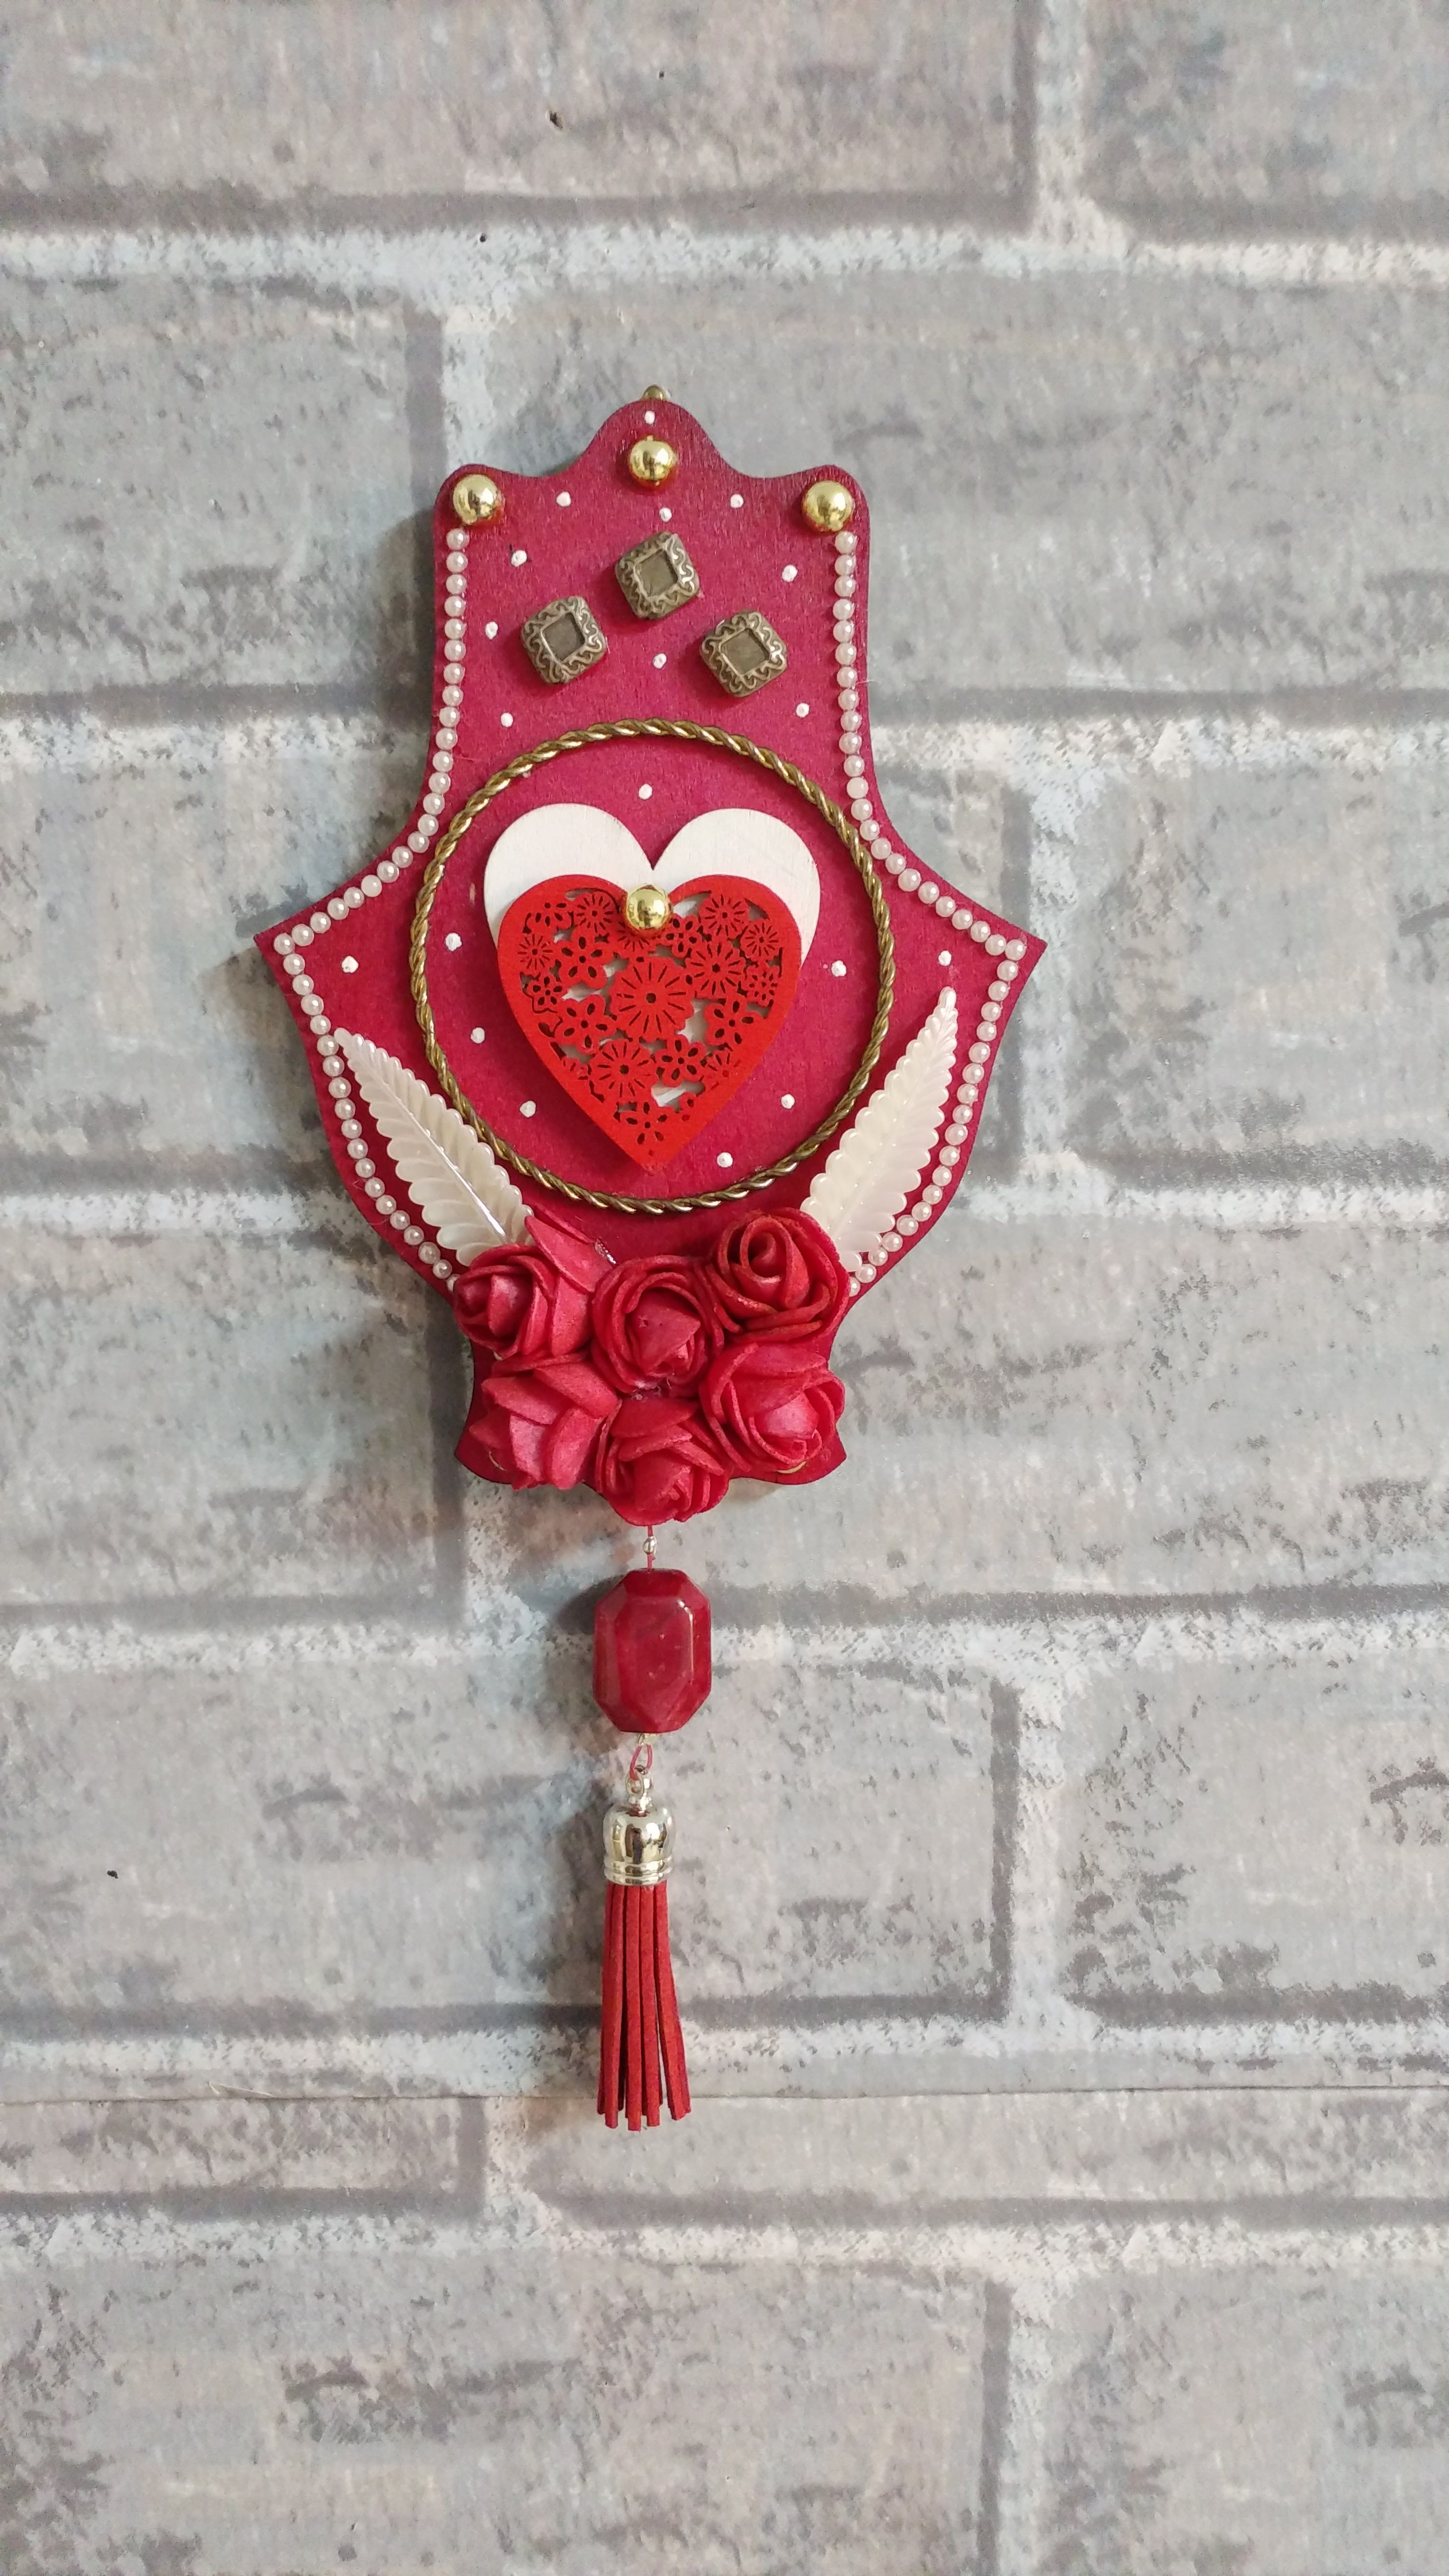 gift art decor wooden home charm décor living good luck red room wall hanging hangings hamsa chamsa jewish housewarming judaica